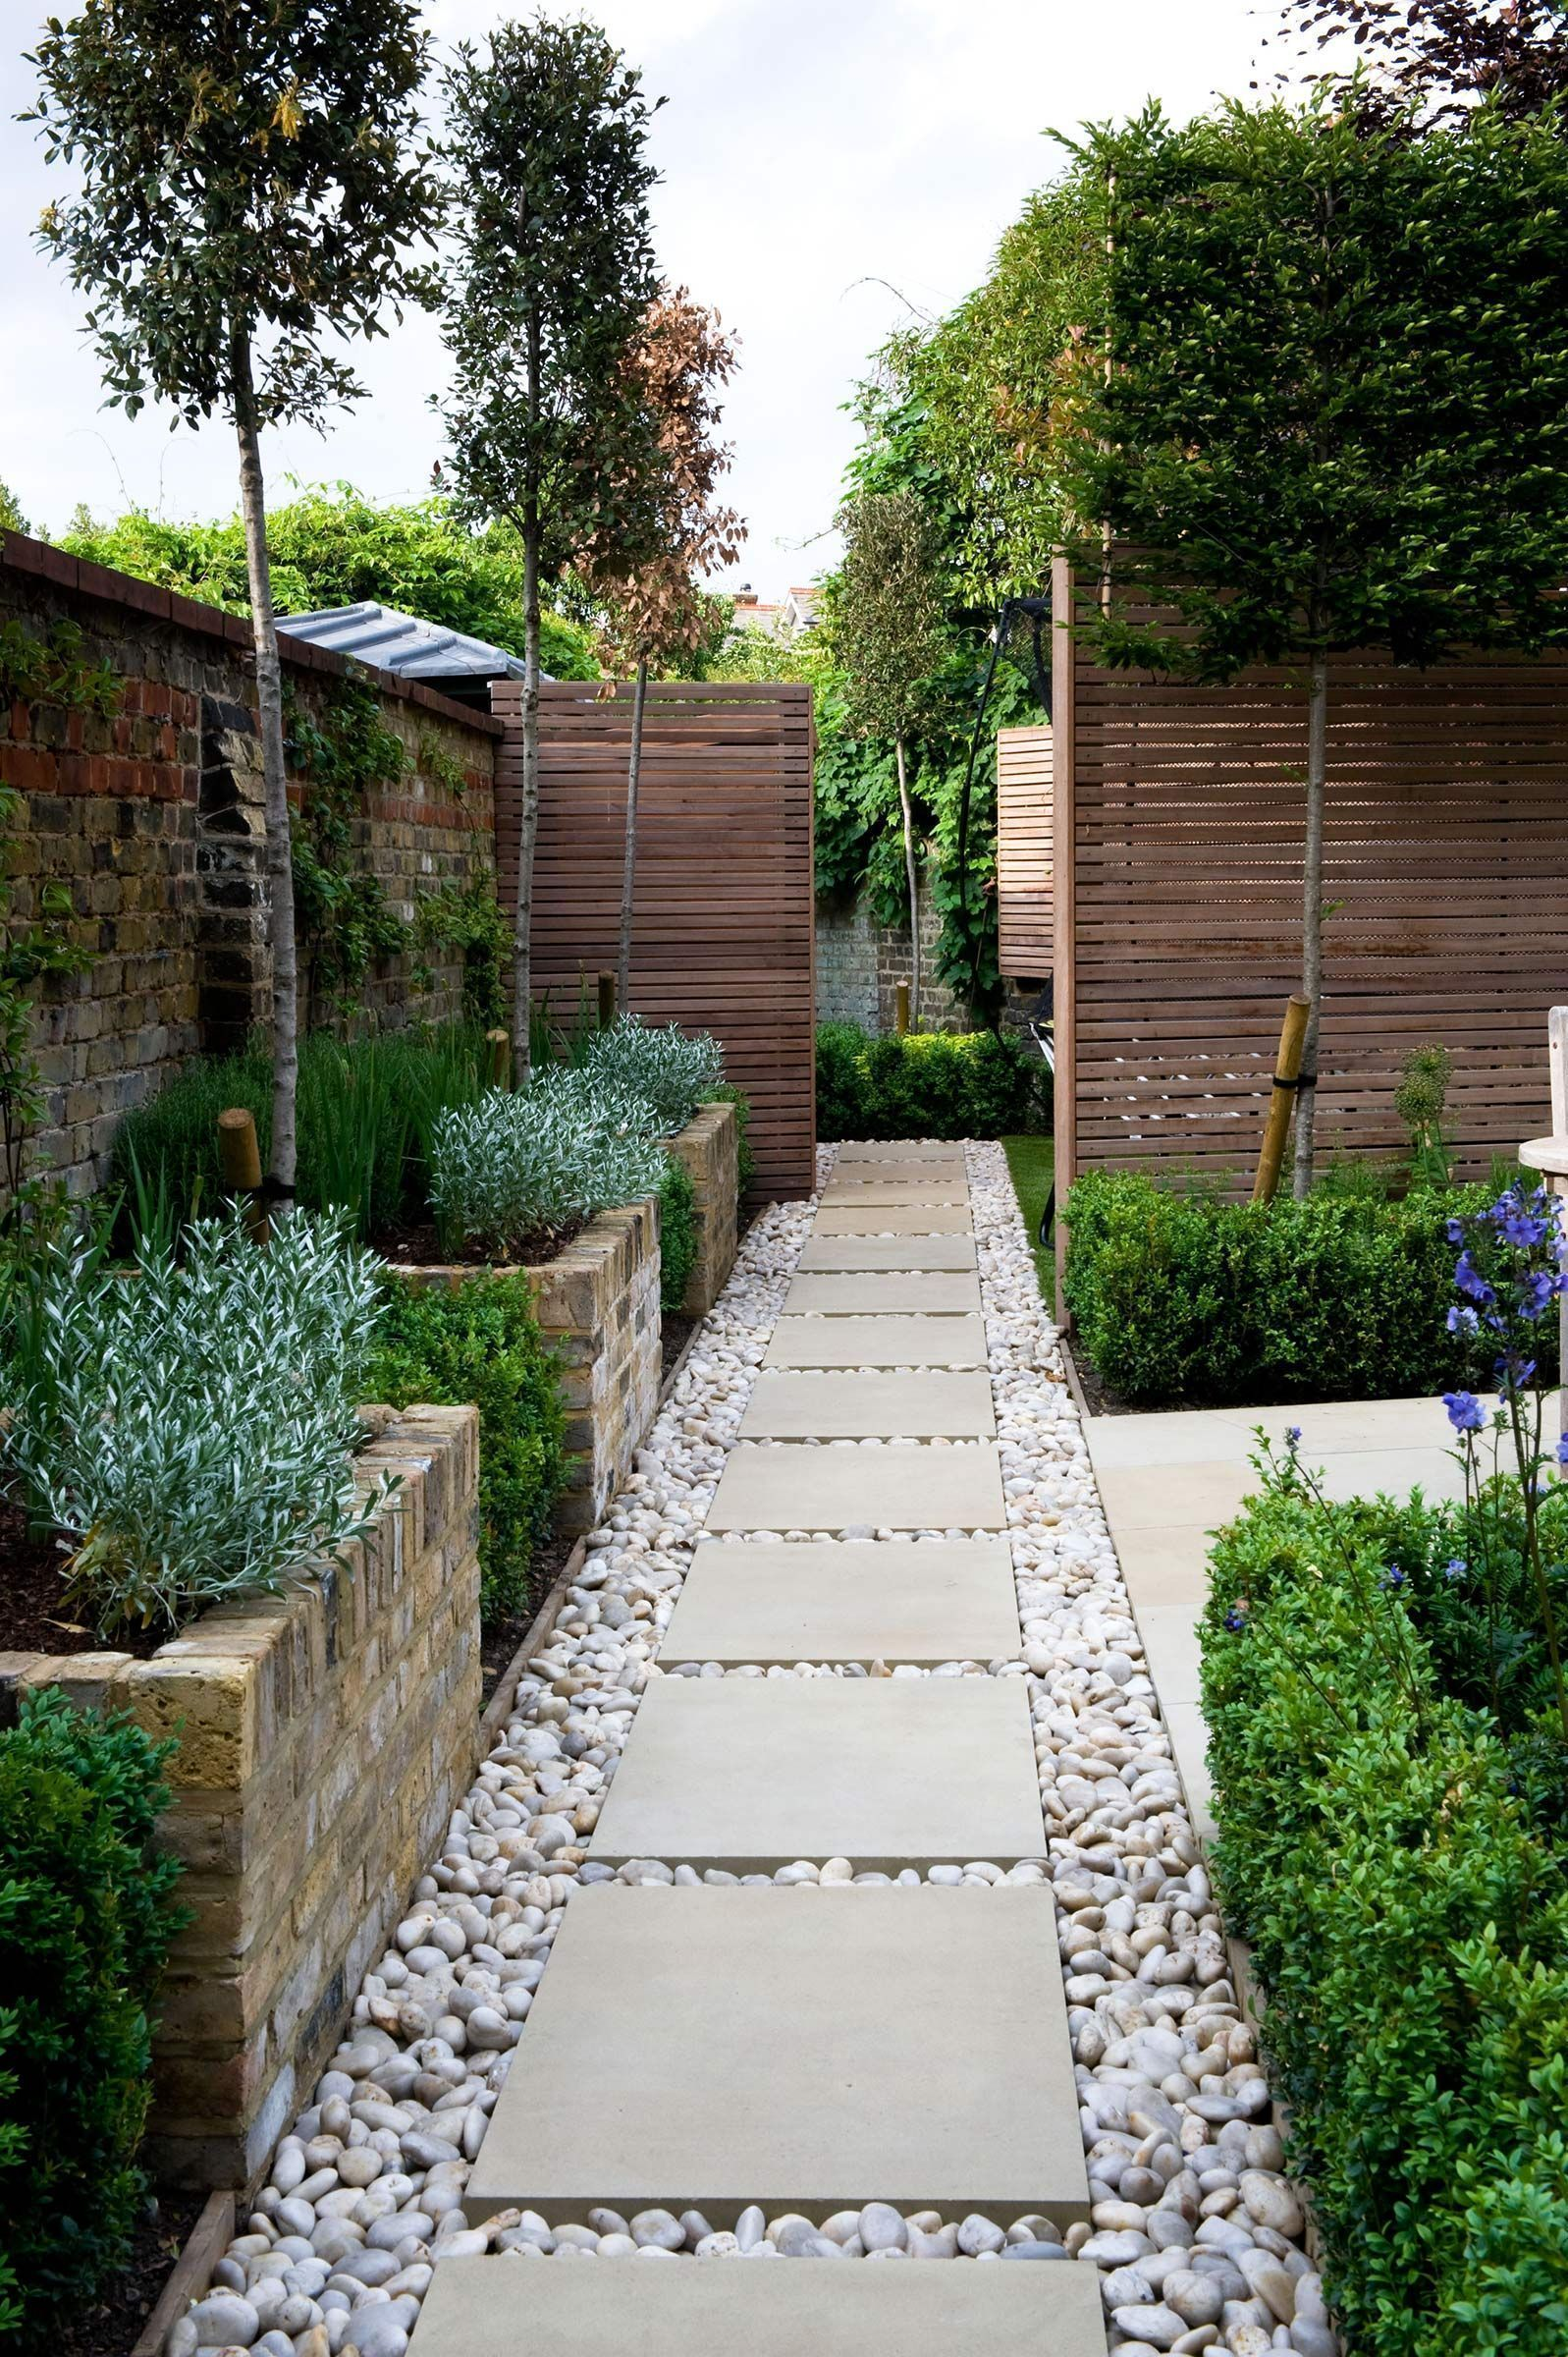 here is a gallery of backyard garden ideas (with photos) that will